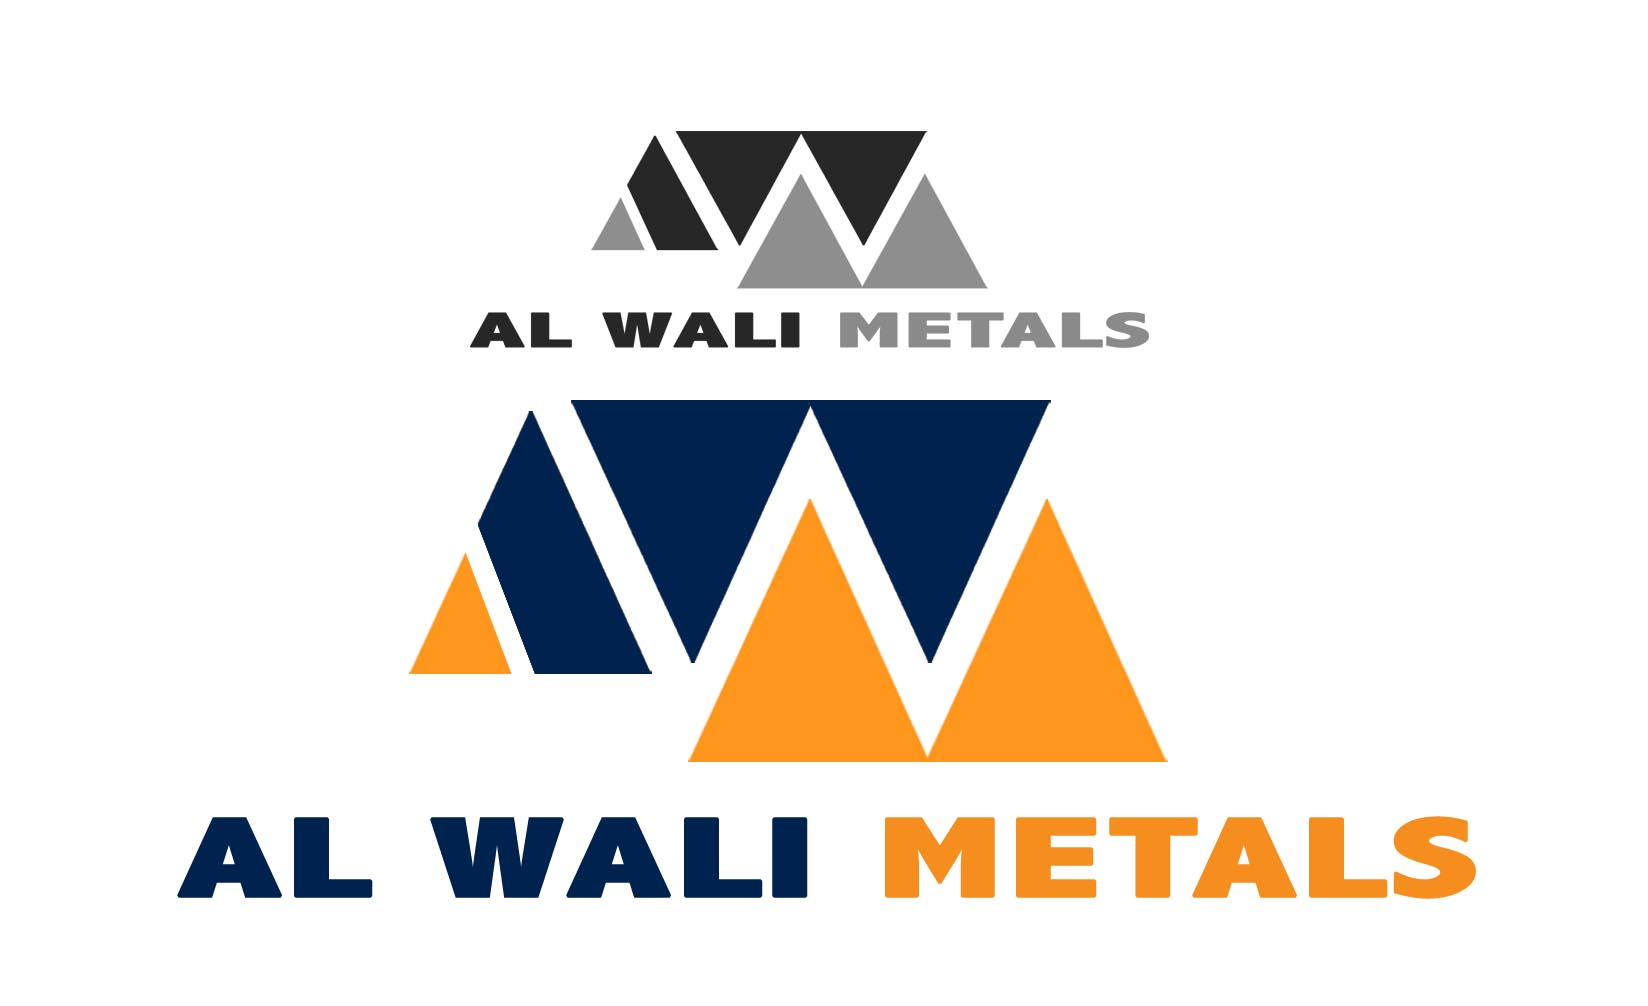 Logo Design by Cesar III Sotto - Entry No. 34 in the Logo Design Contest Inspiring Logo Design for Al Wali Metals.